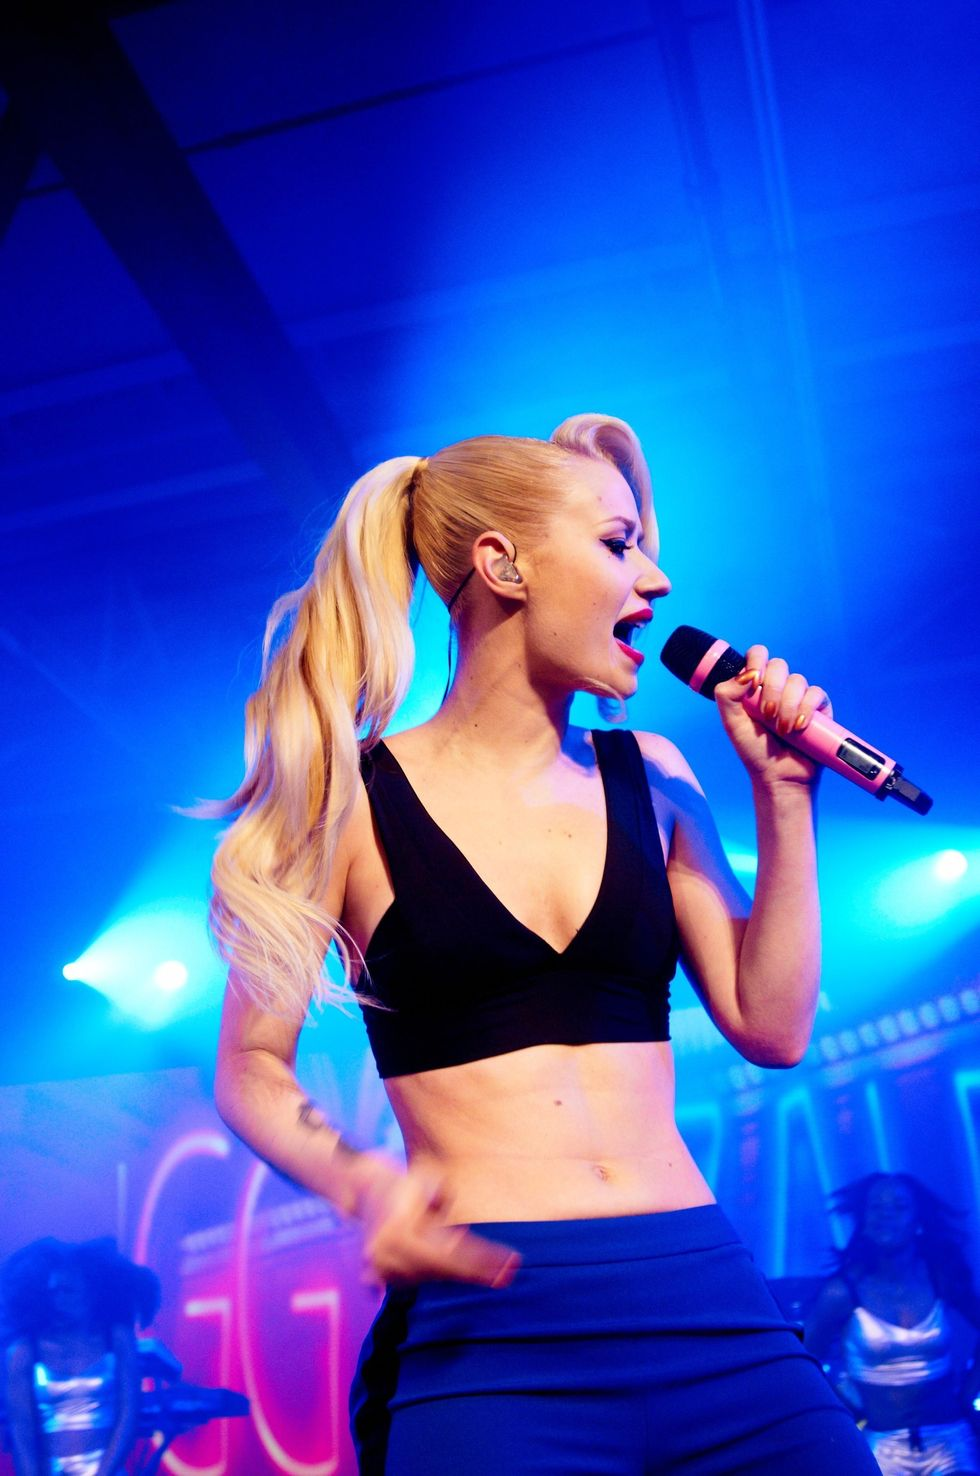 Pics from Club DKNY with Iggy Azalea + Rita Ora